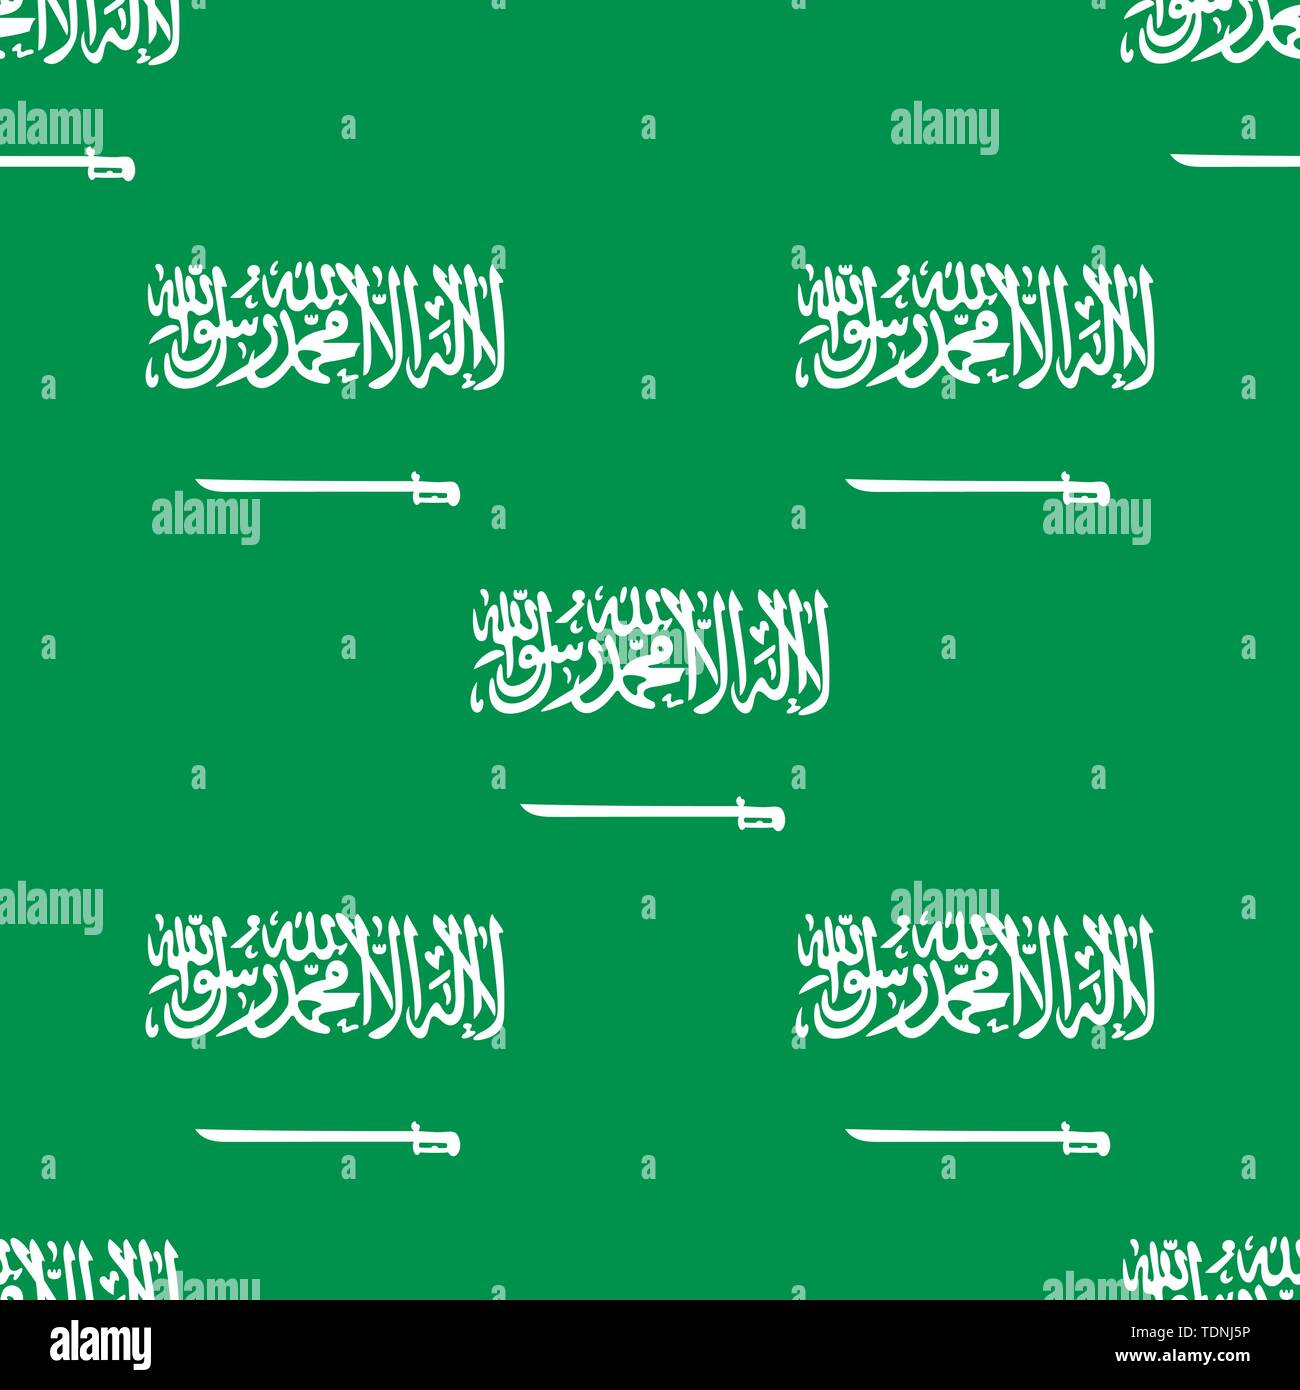 23 September. Saudi Arabia Happy Independence Day. Seamless pattern design for banner, poster, card, postcard, cover, business card. Vector eps10 illu - Stock Vector